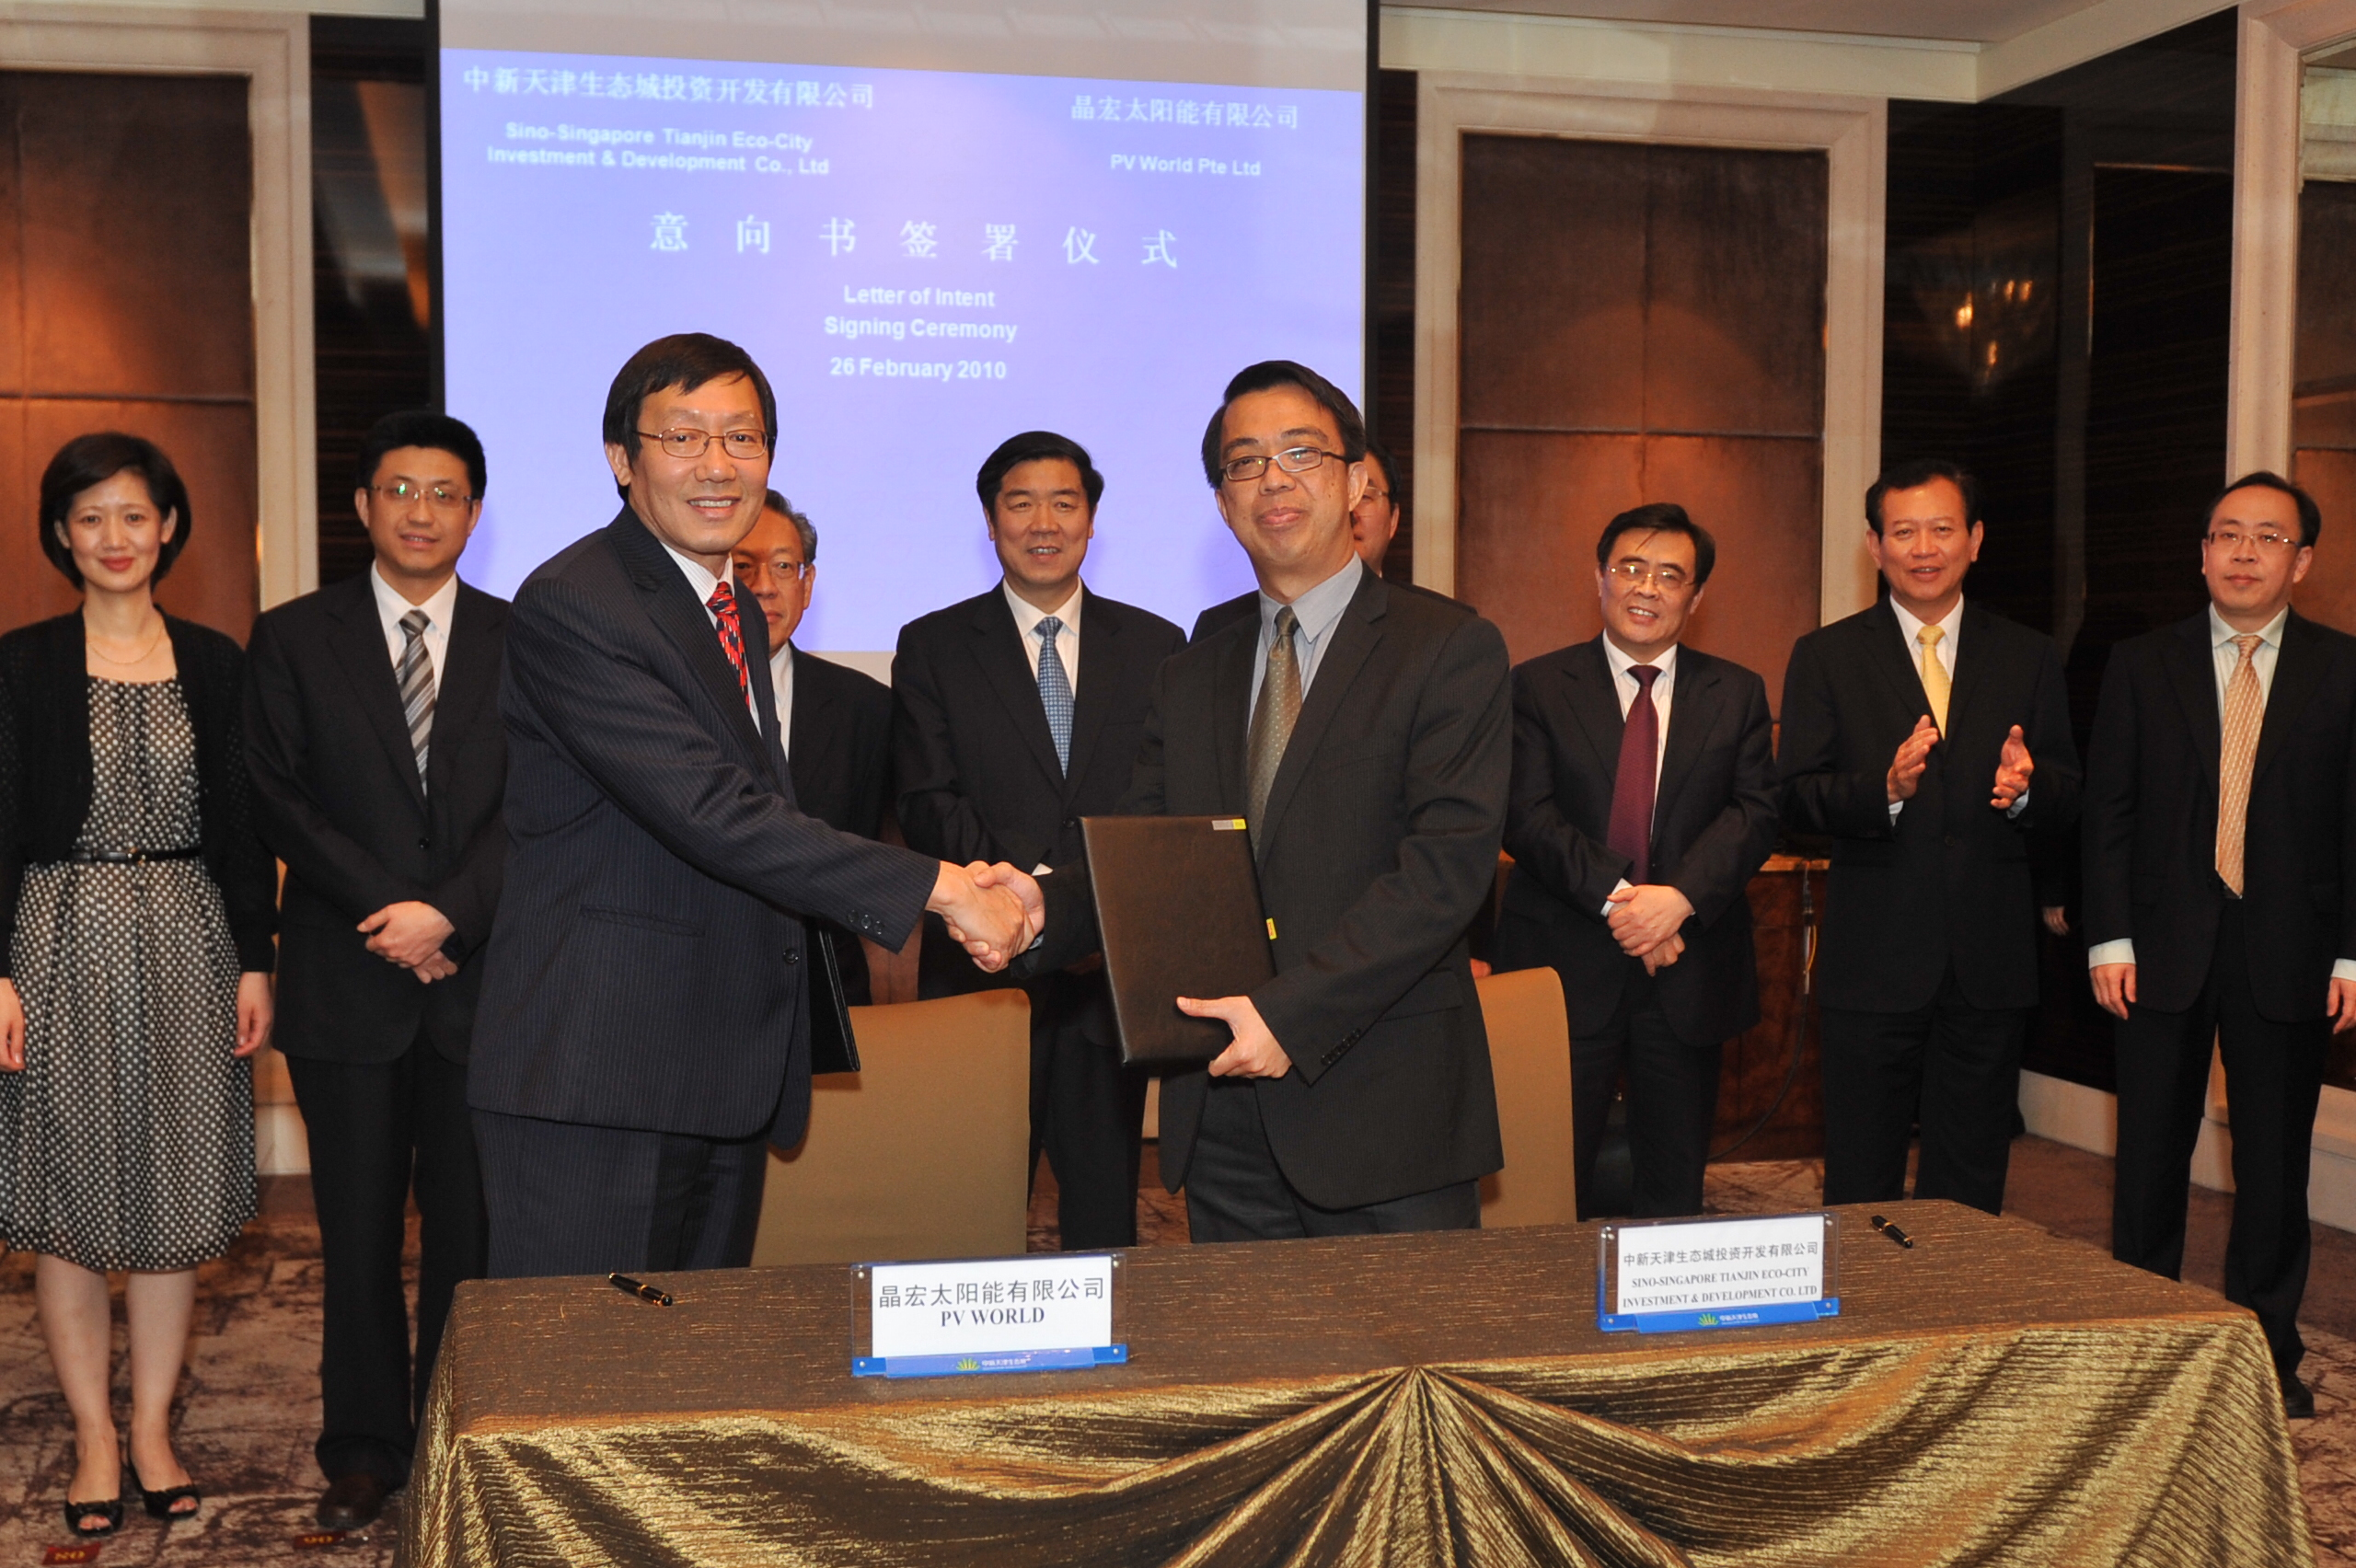 Keppel corporation tianjin eco city eco industrial park welcomes signing of letter of intent between sstec and pv world pte ltd handshake for a successful venture left to right mr loh lean chooi managing director spiritdancerdesigns Image collections